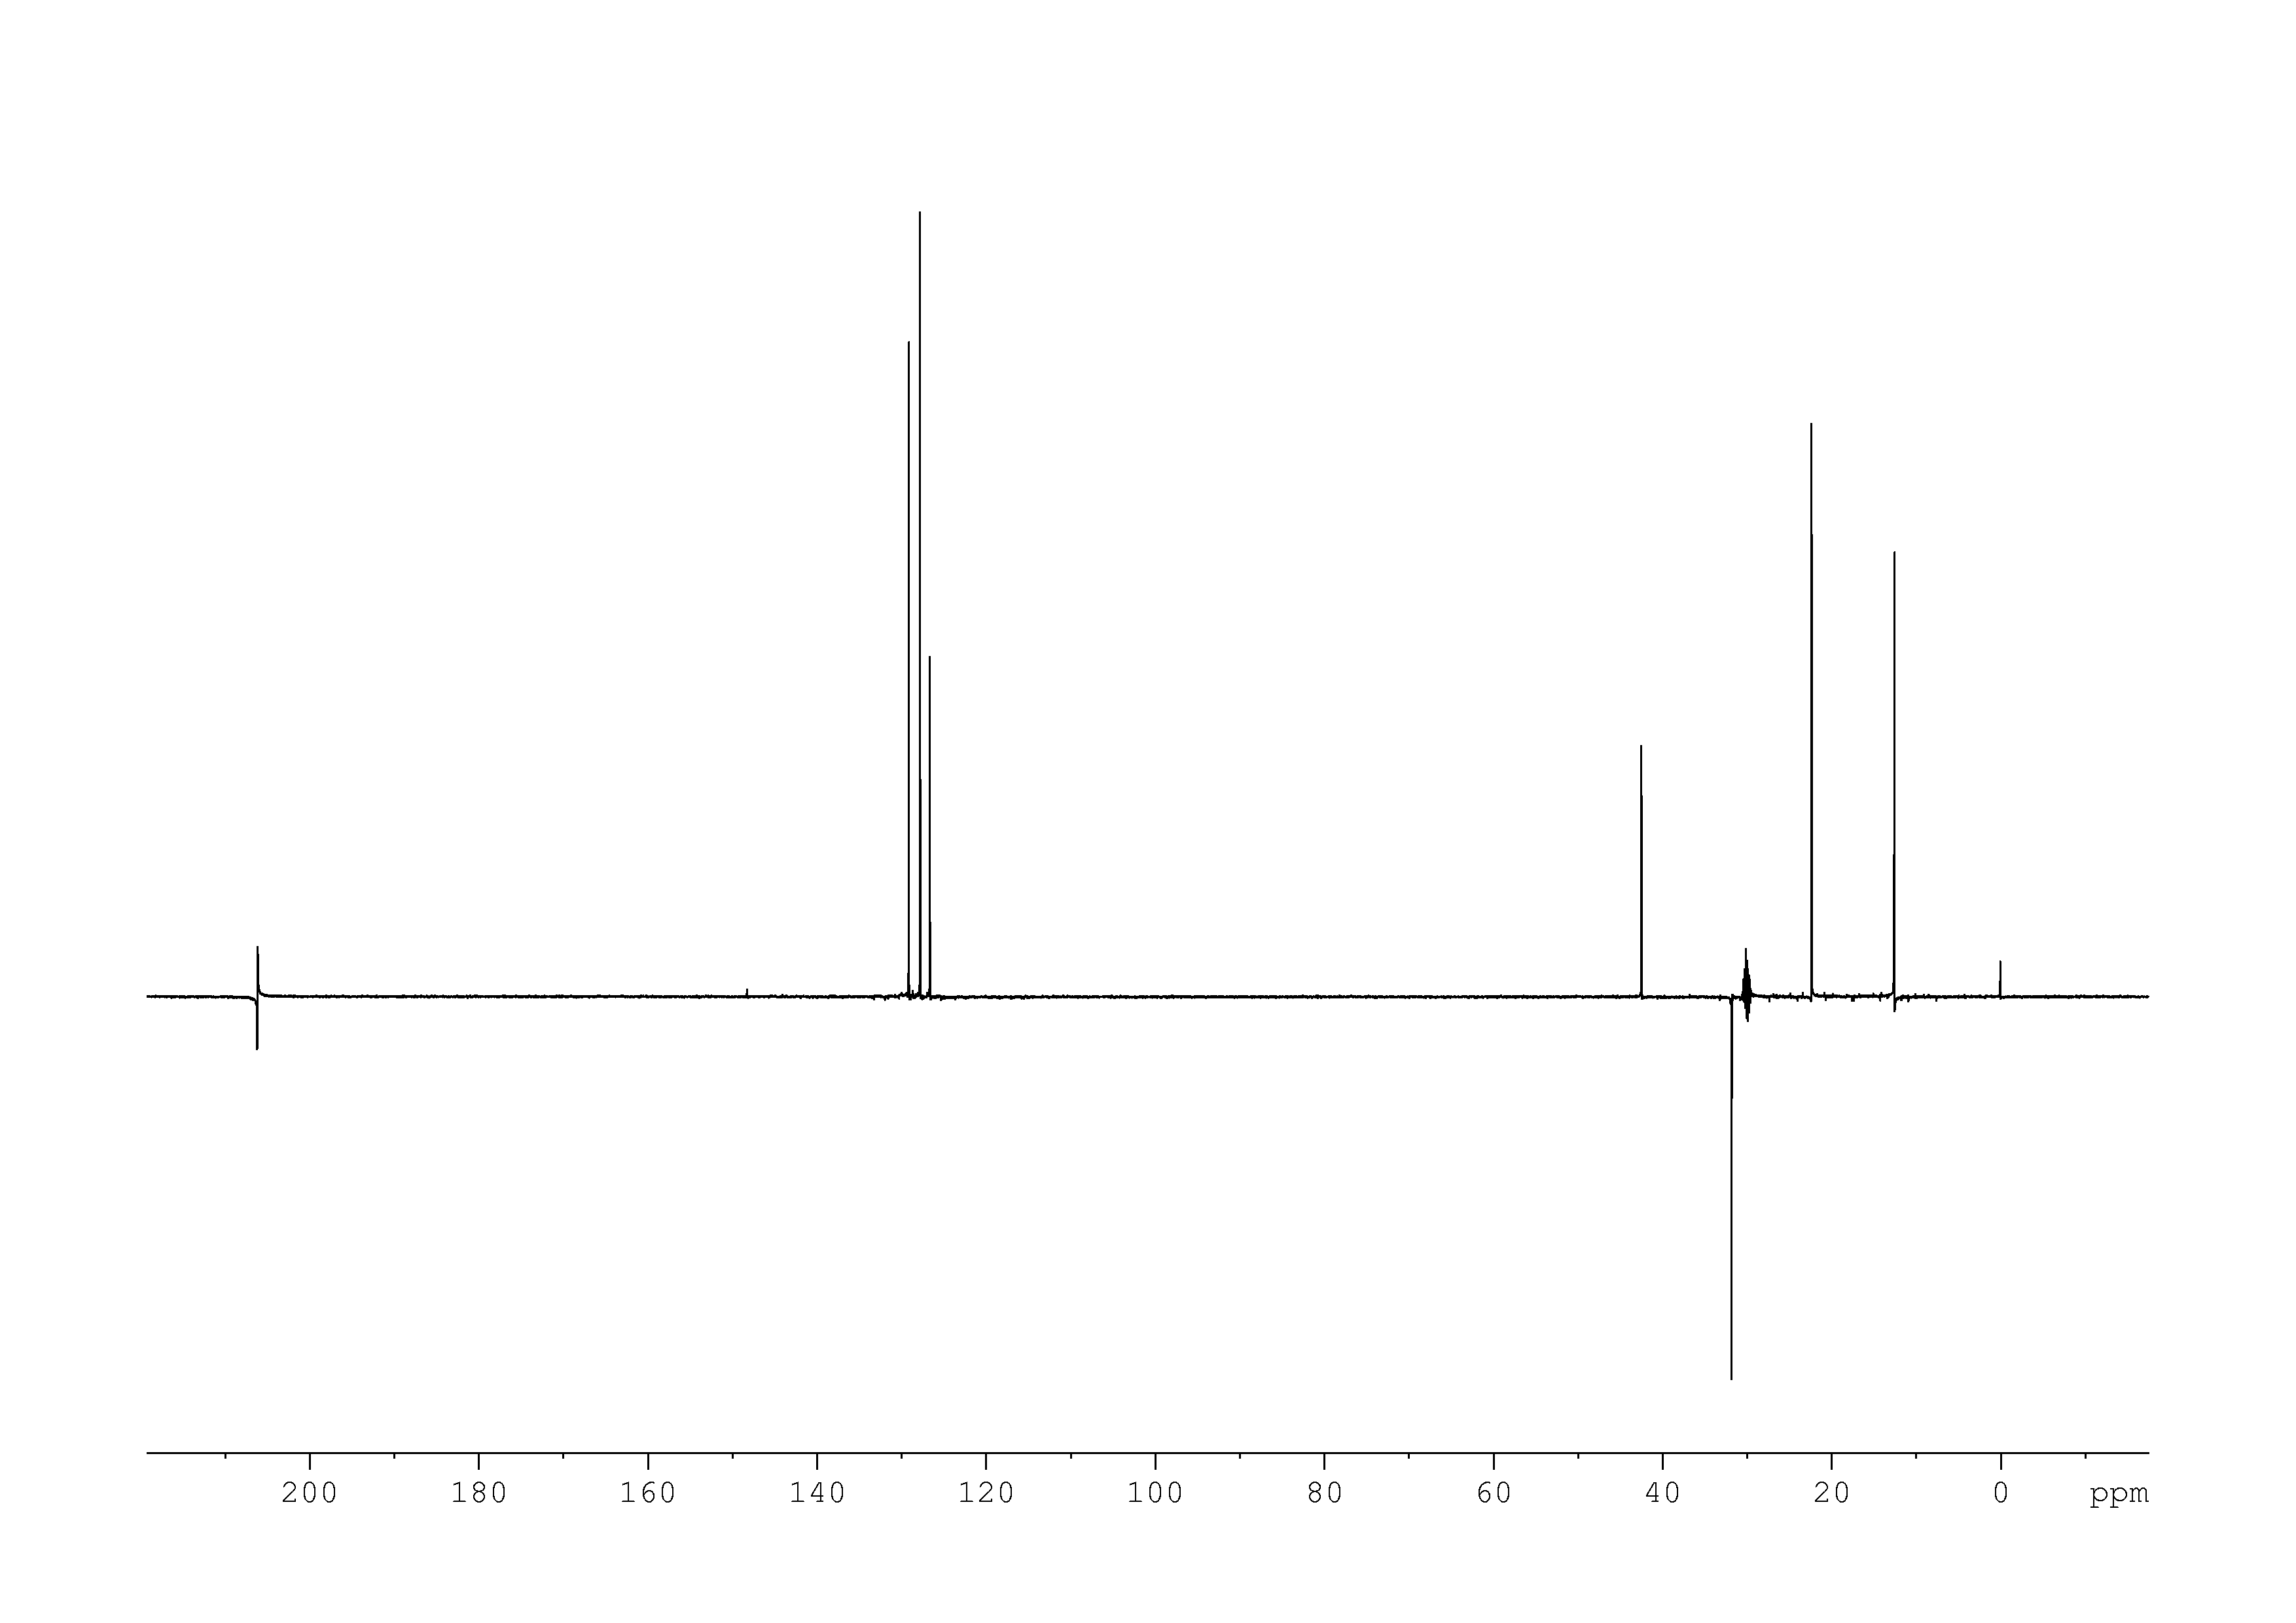 1D DEPT135, n/a spectrum for sec-butylbenzene